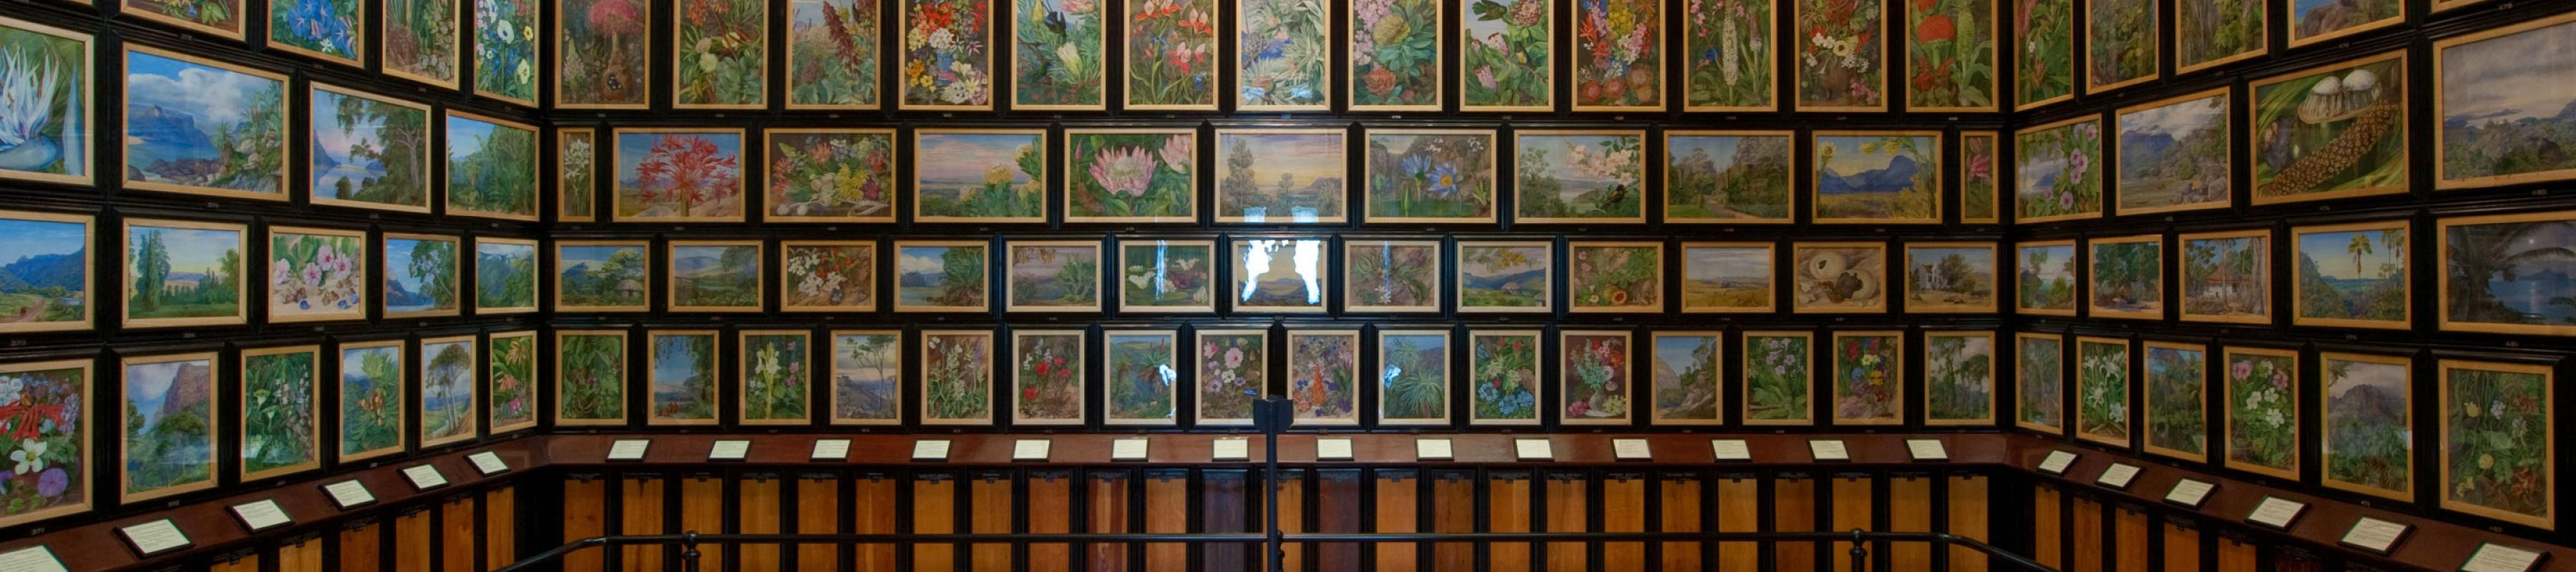 The Marianne North Gallery